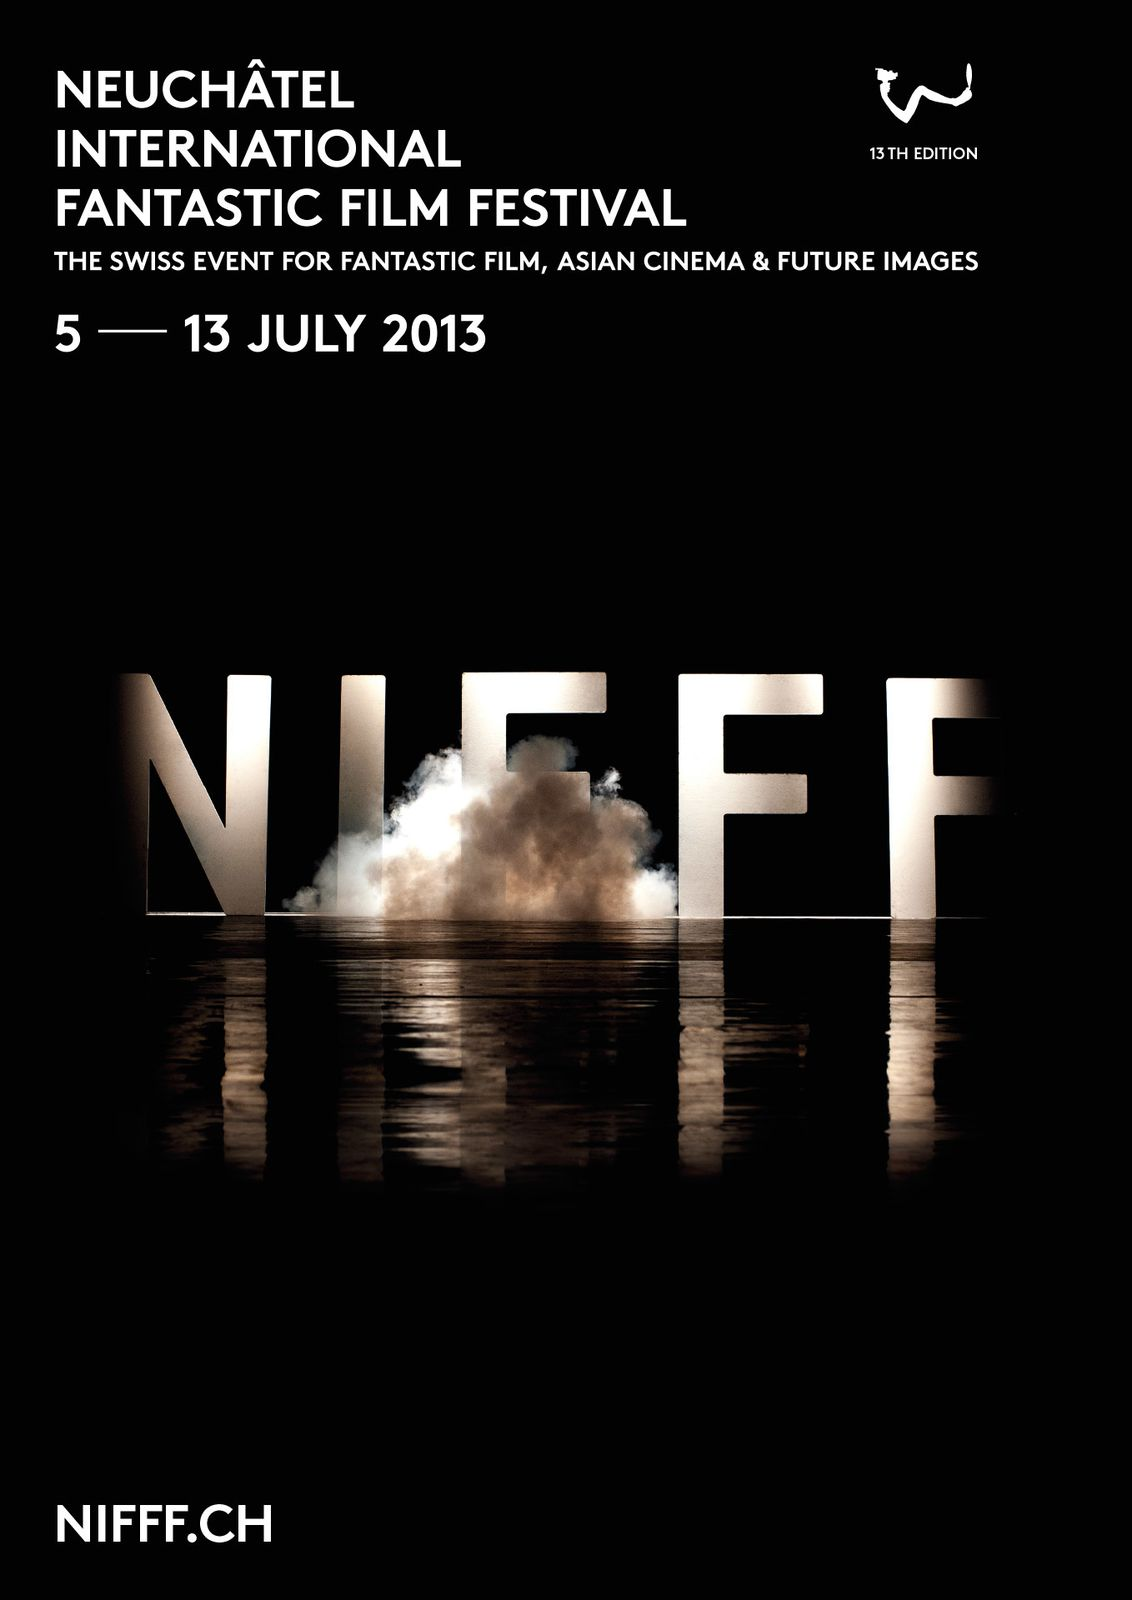 NIFFF 2013 SYMPOSIUM IMAGING THE FUTURE (ITF)